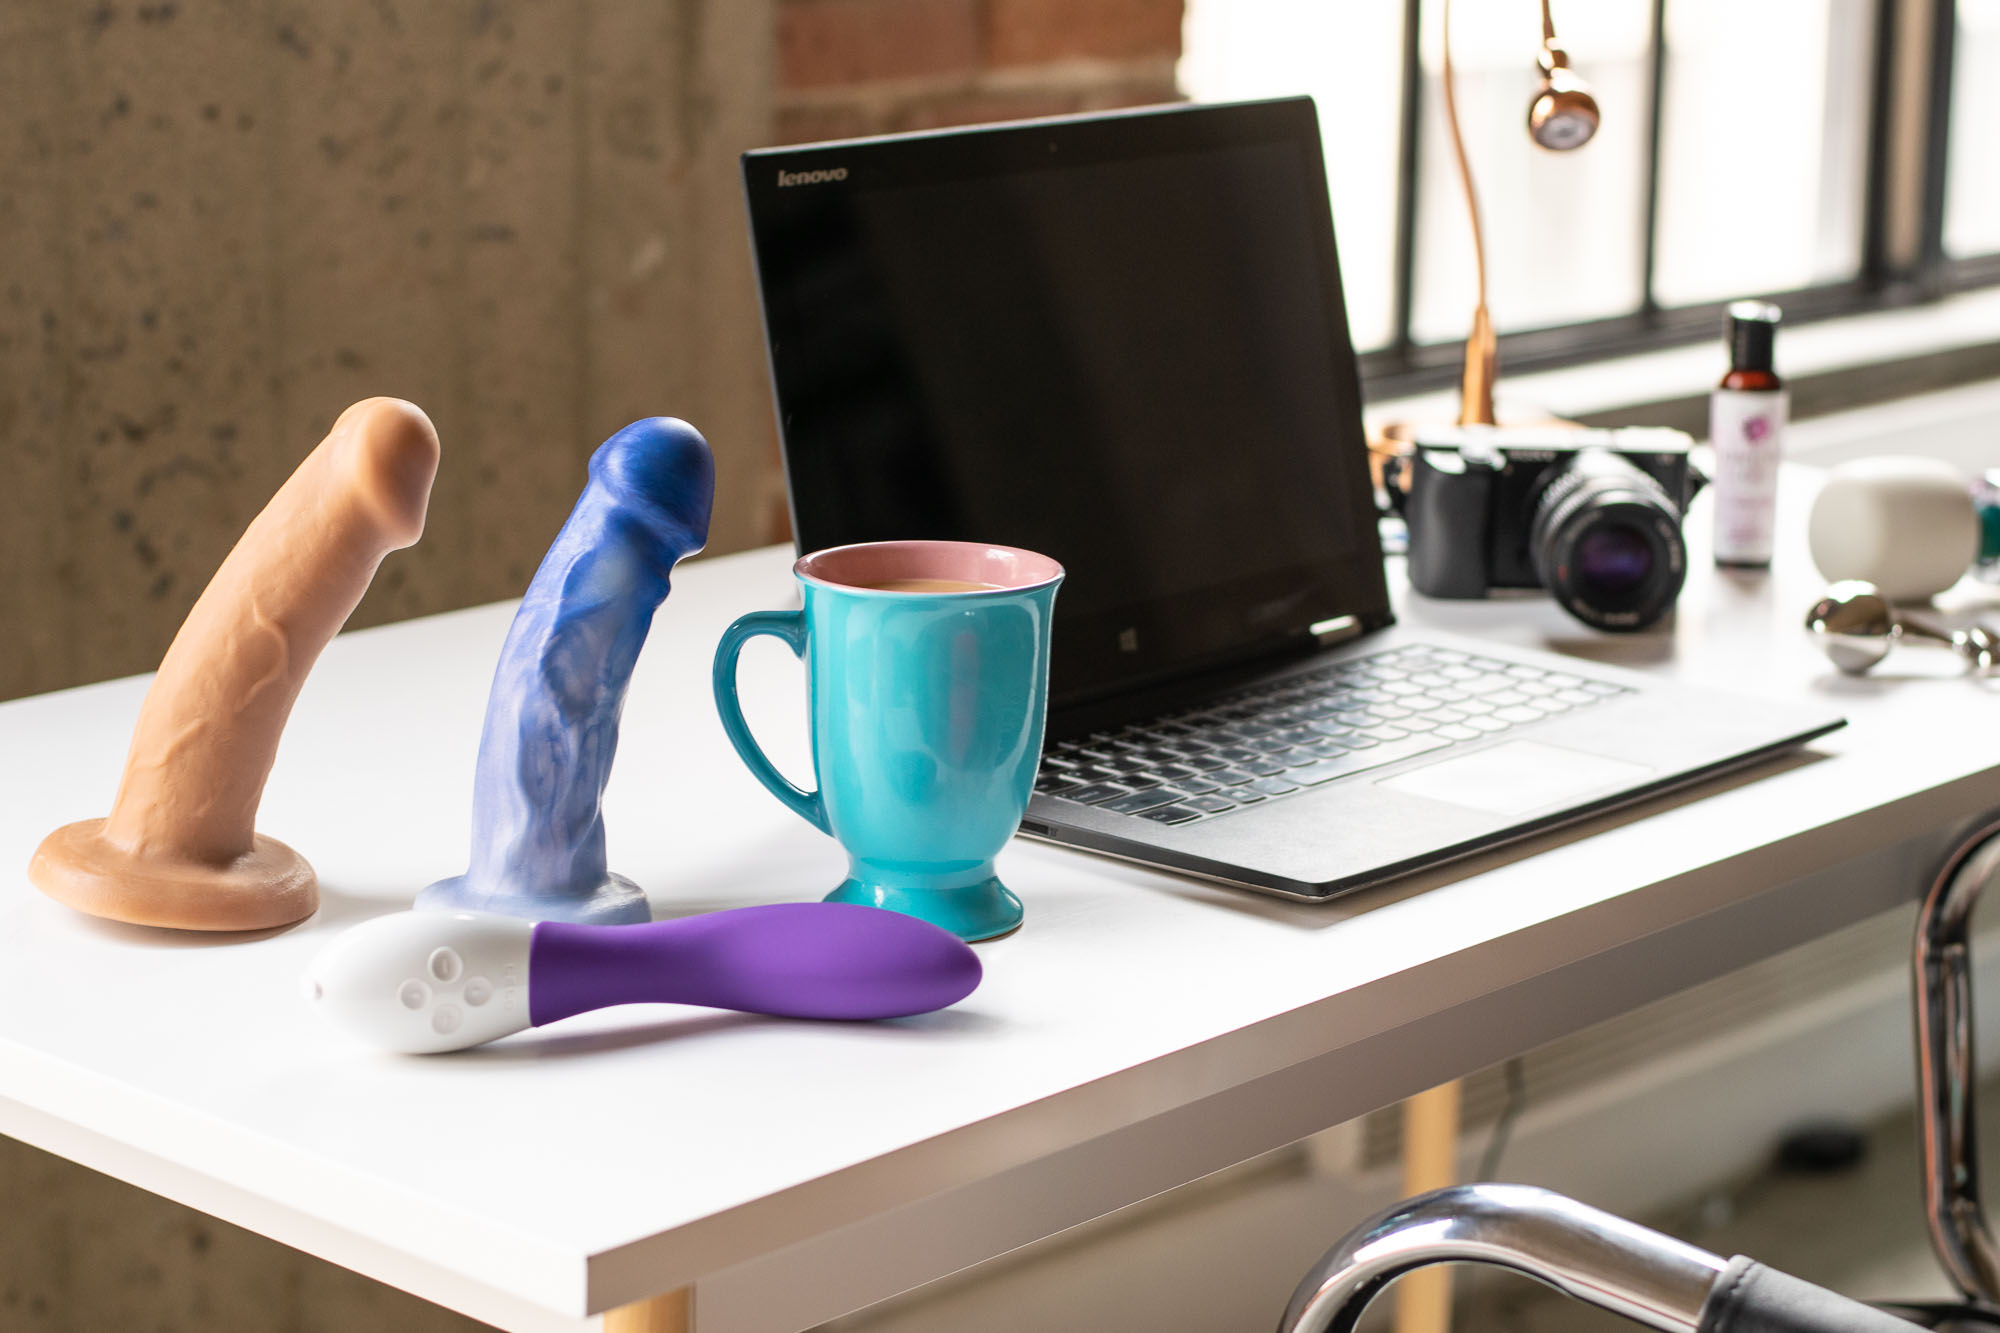 A sex blogger's desk: dildos, coffee, laptop, etc.